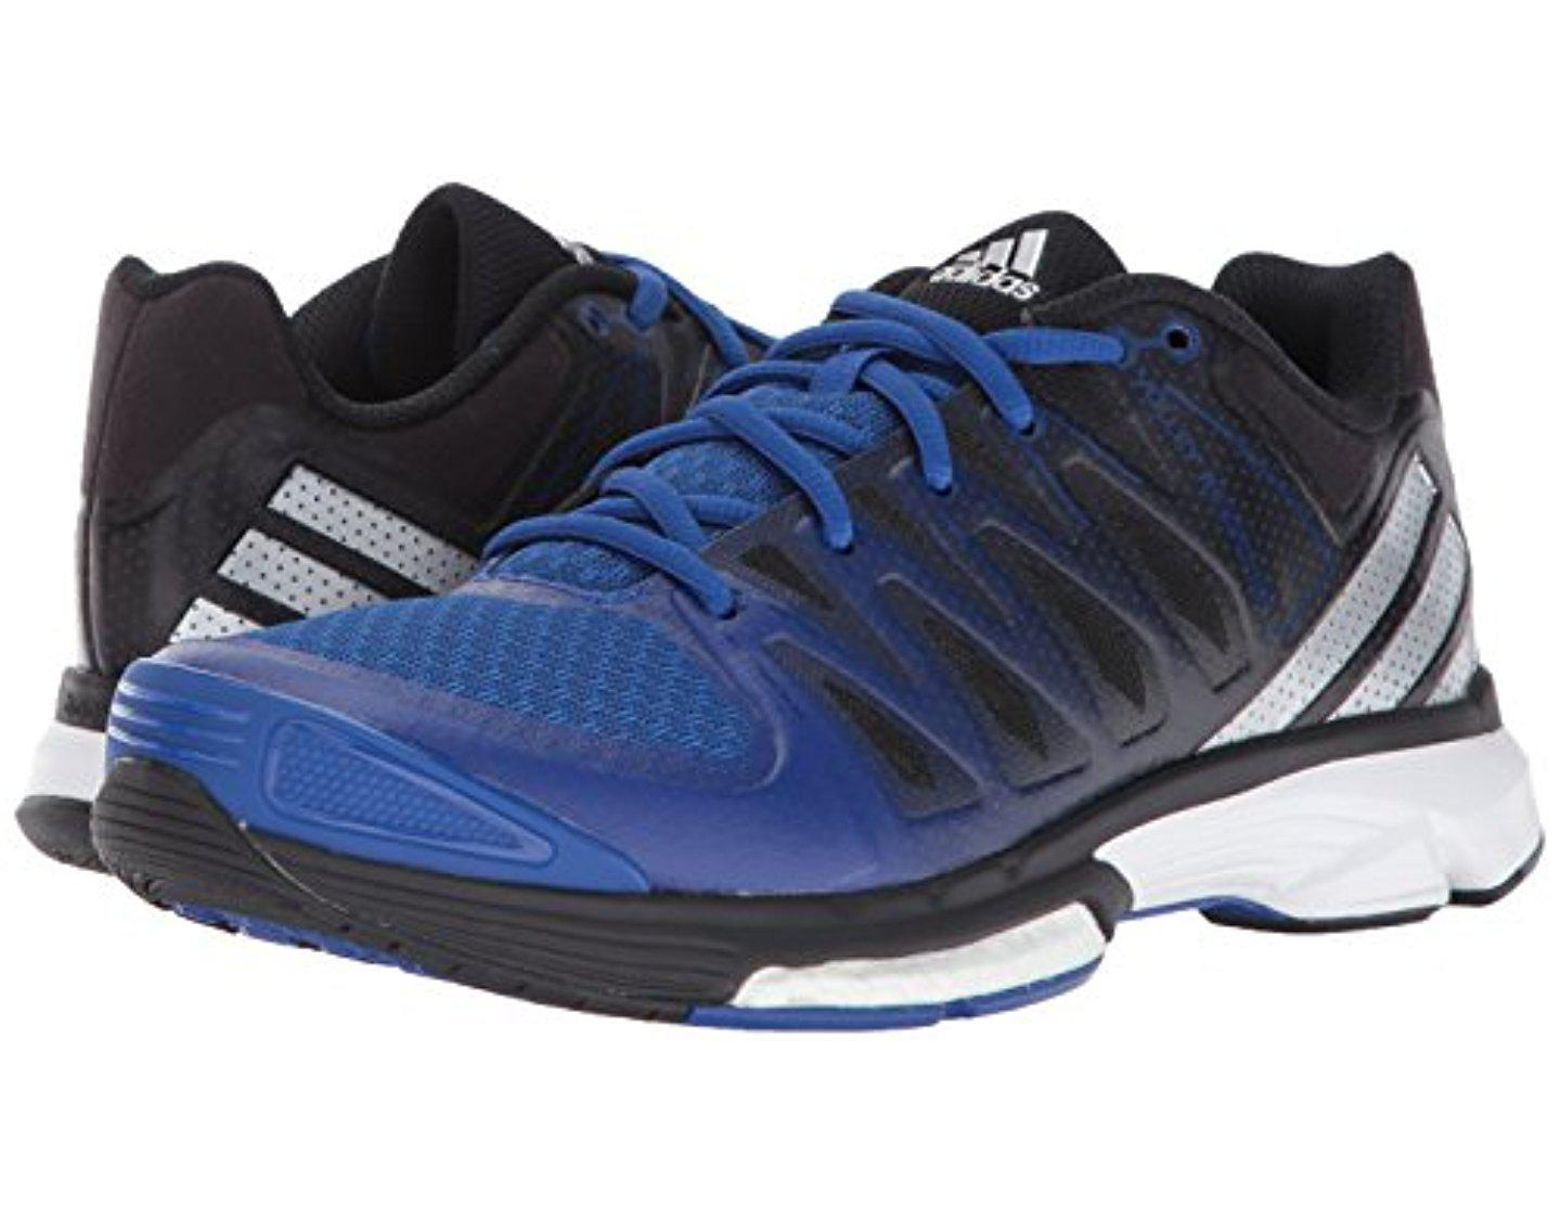 new styles 78258 2eb7a Lyst - adidas Performance Volley Response 2 Boost W Volleyball Shoe in Blue